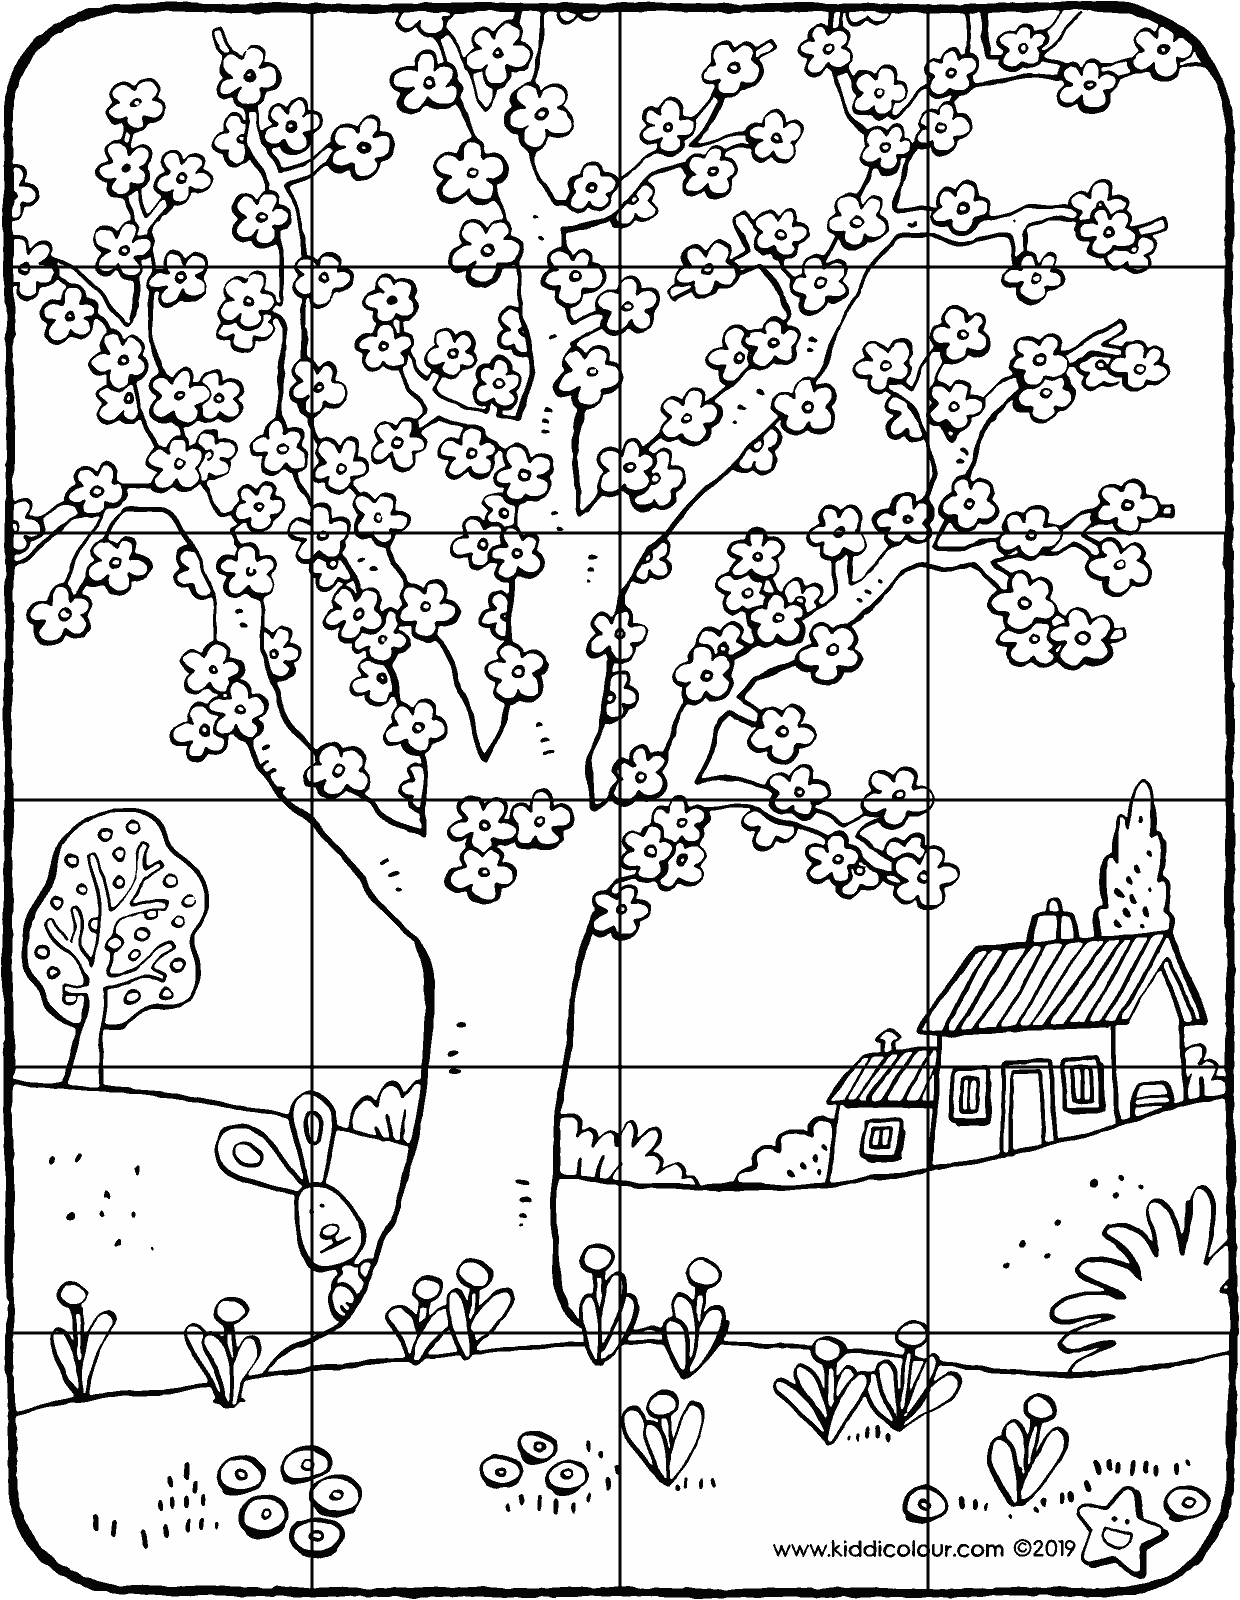 tree in bloom puzzle colouring page drawing picture 01V